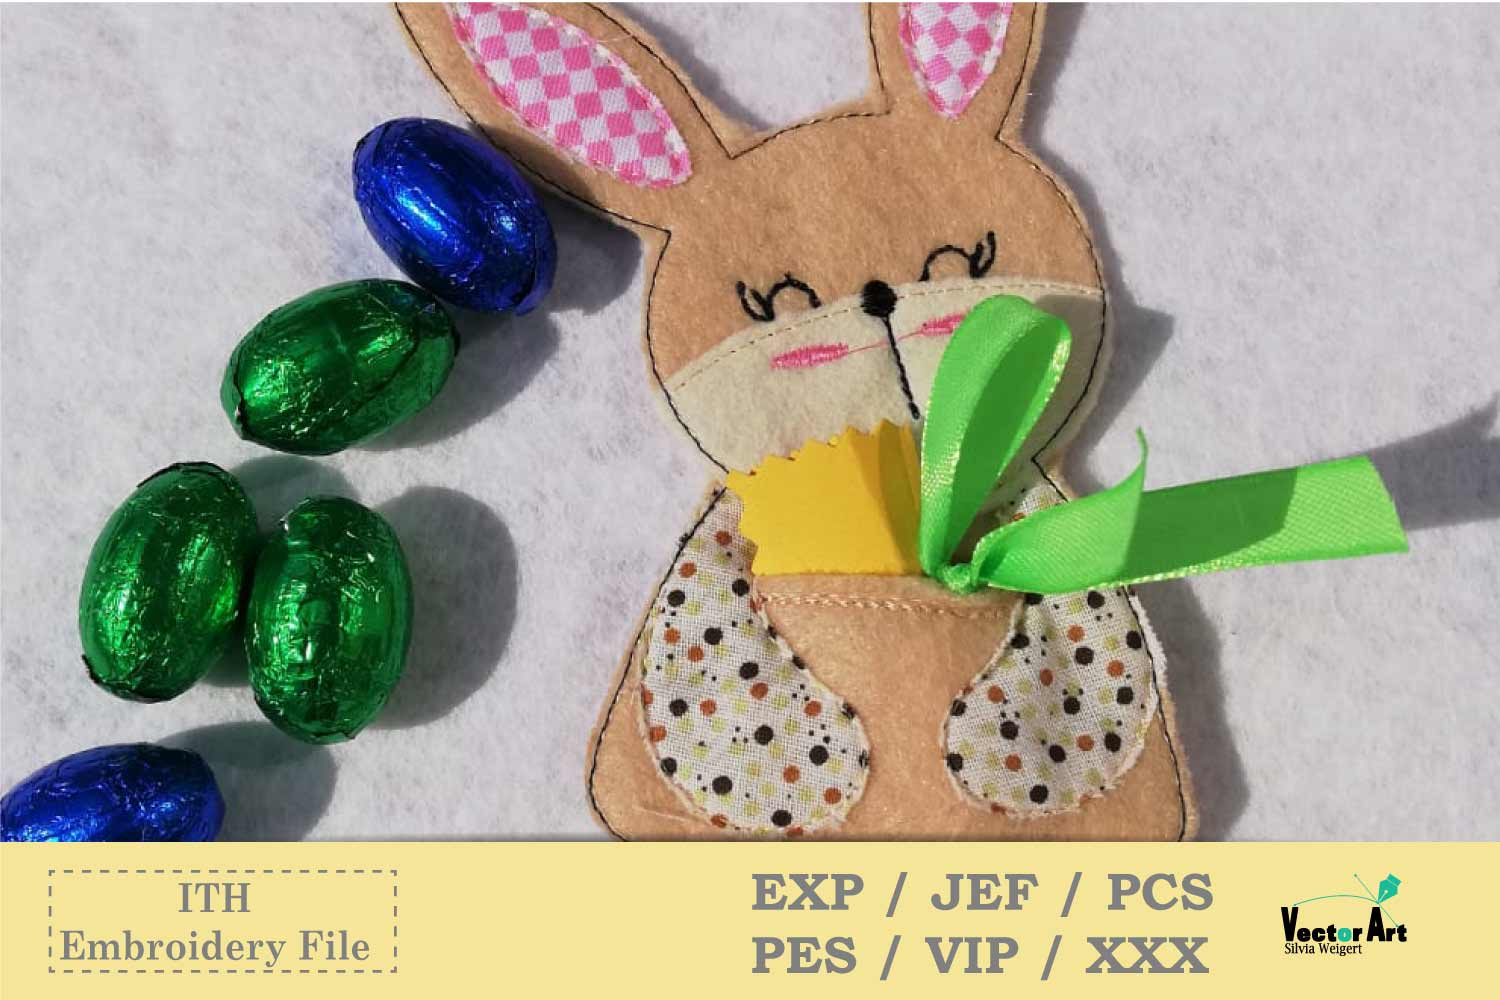 ITH - Money Bunny Gift holder - Embroidery File example image 1